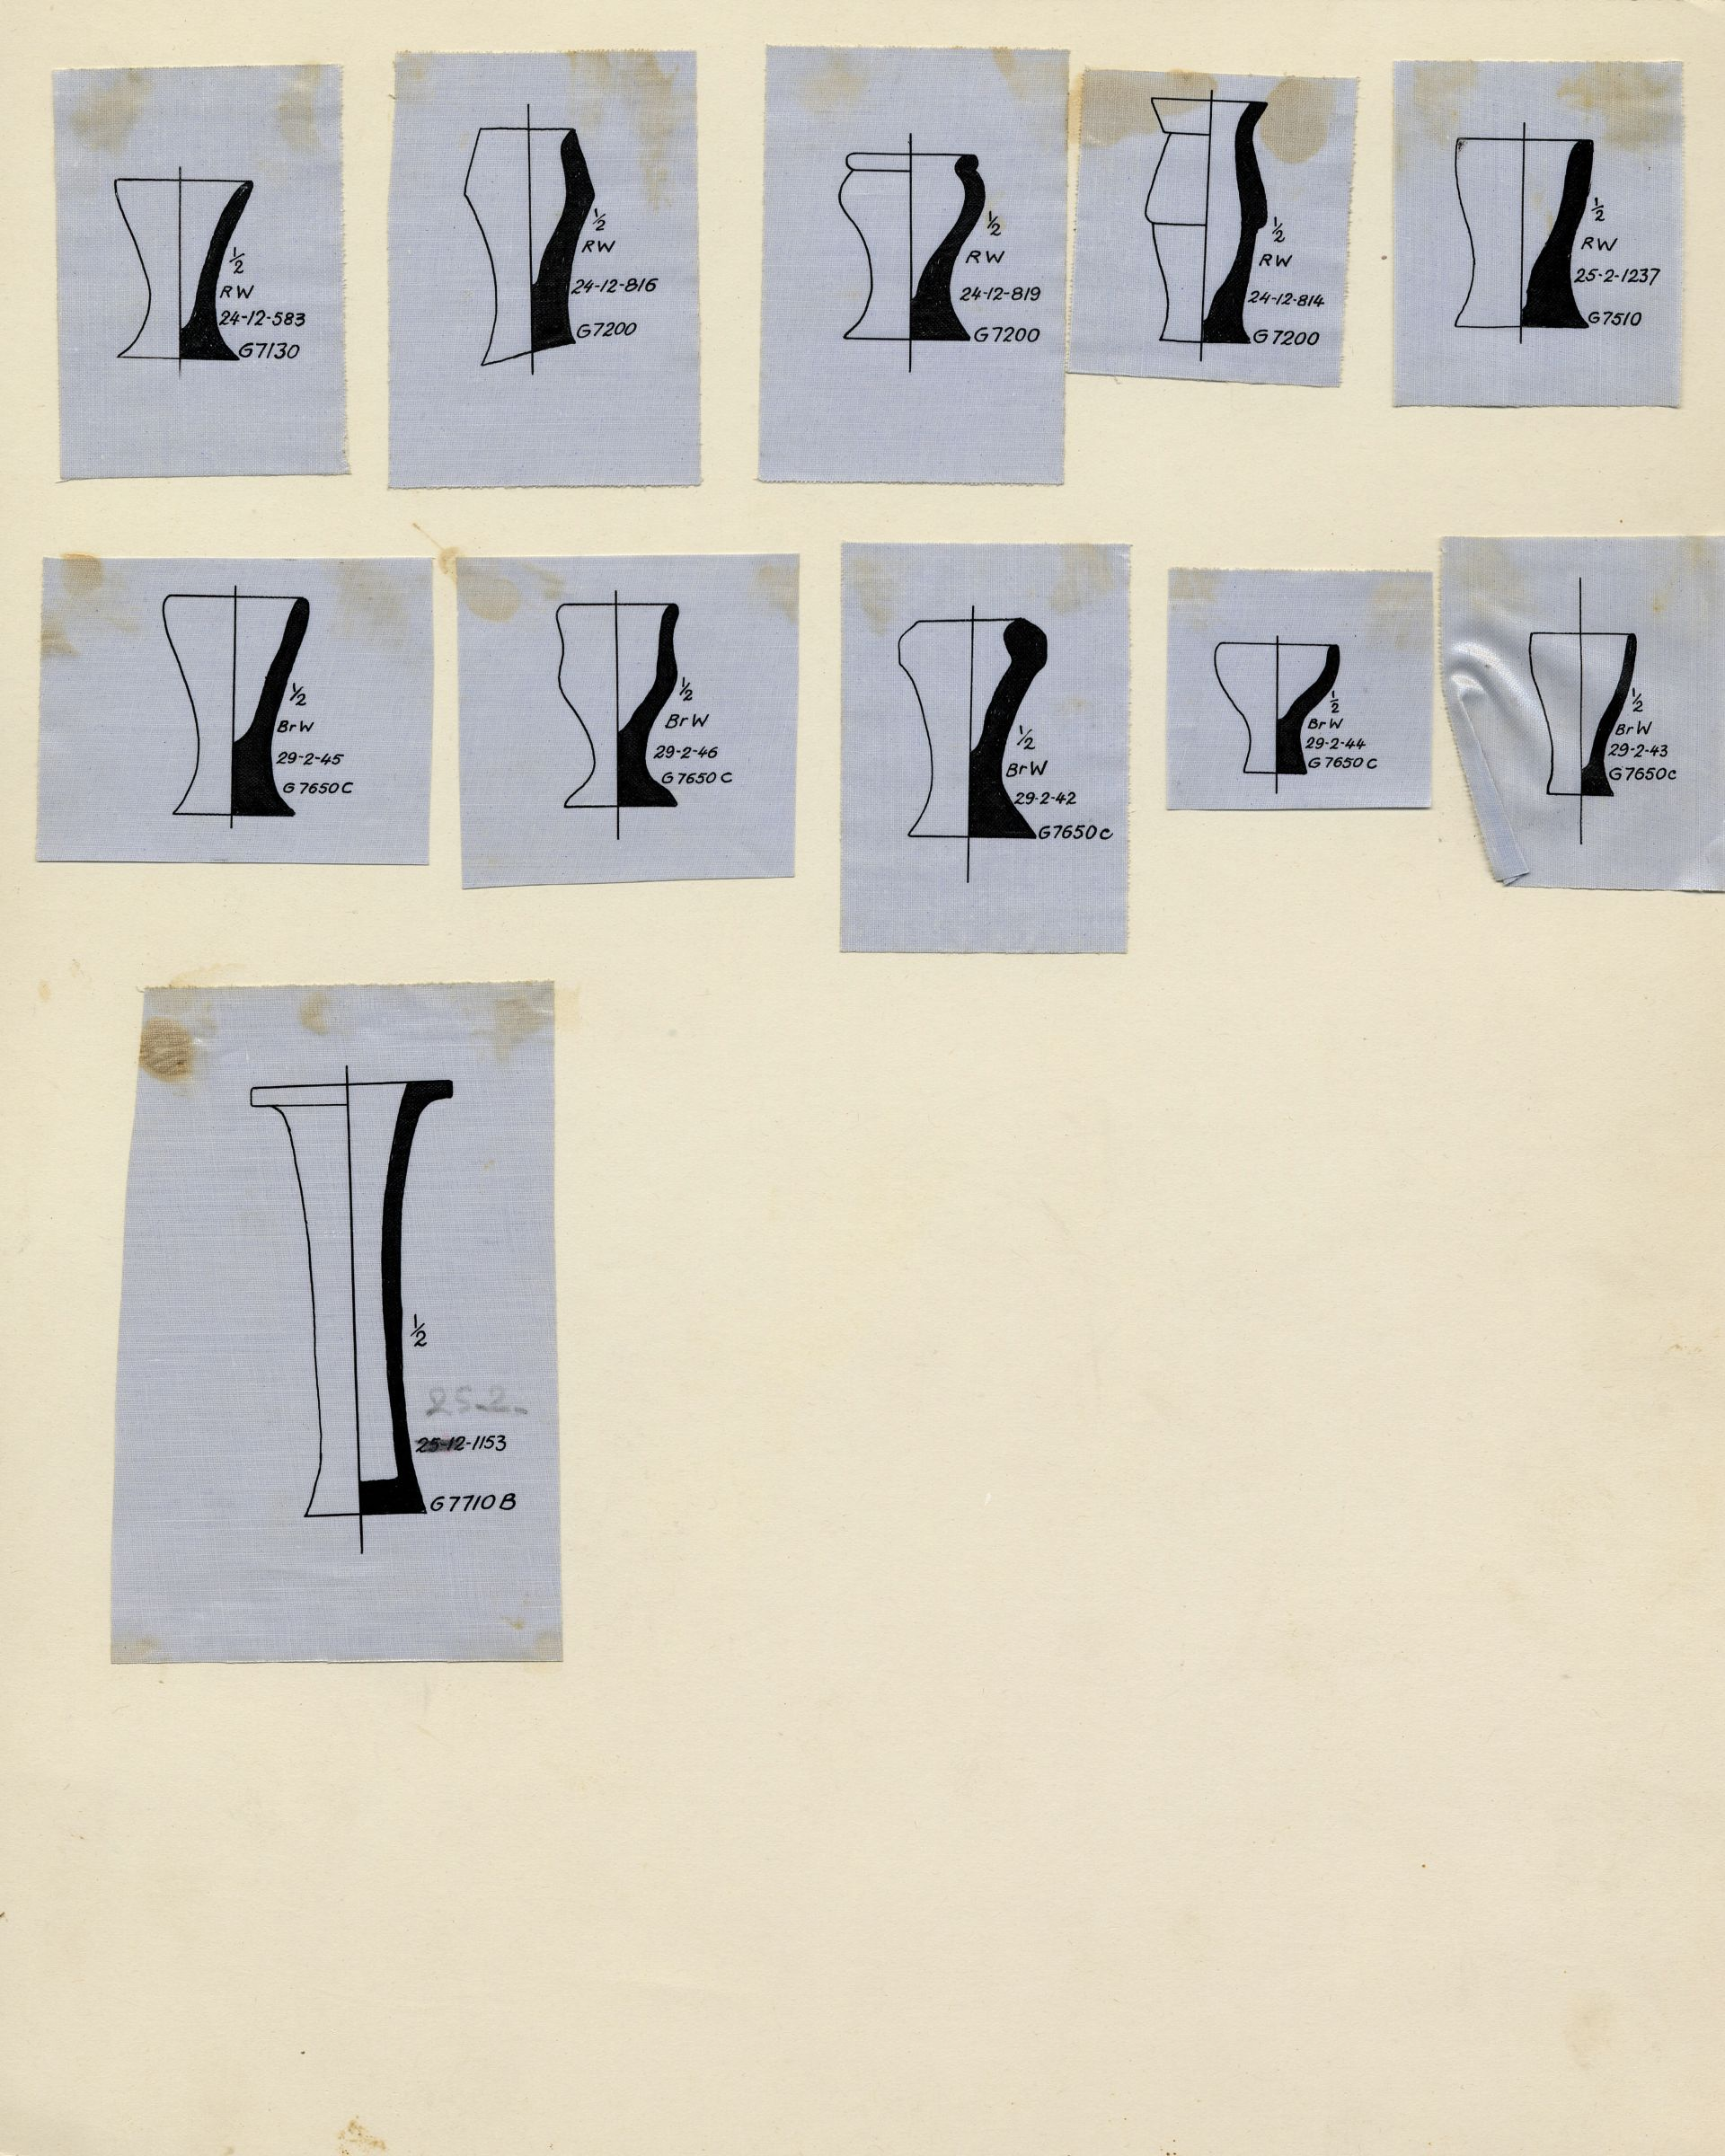 Drawings: Drawing of pottery, model jars from Avenue G 2, G 7510, G 7560, G 7710, Shaft B